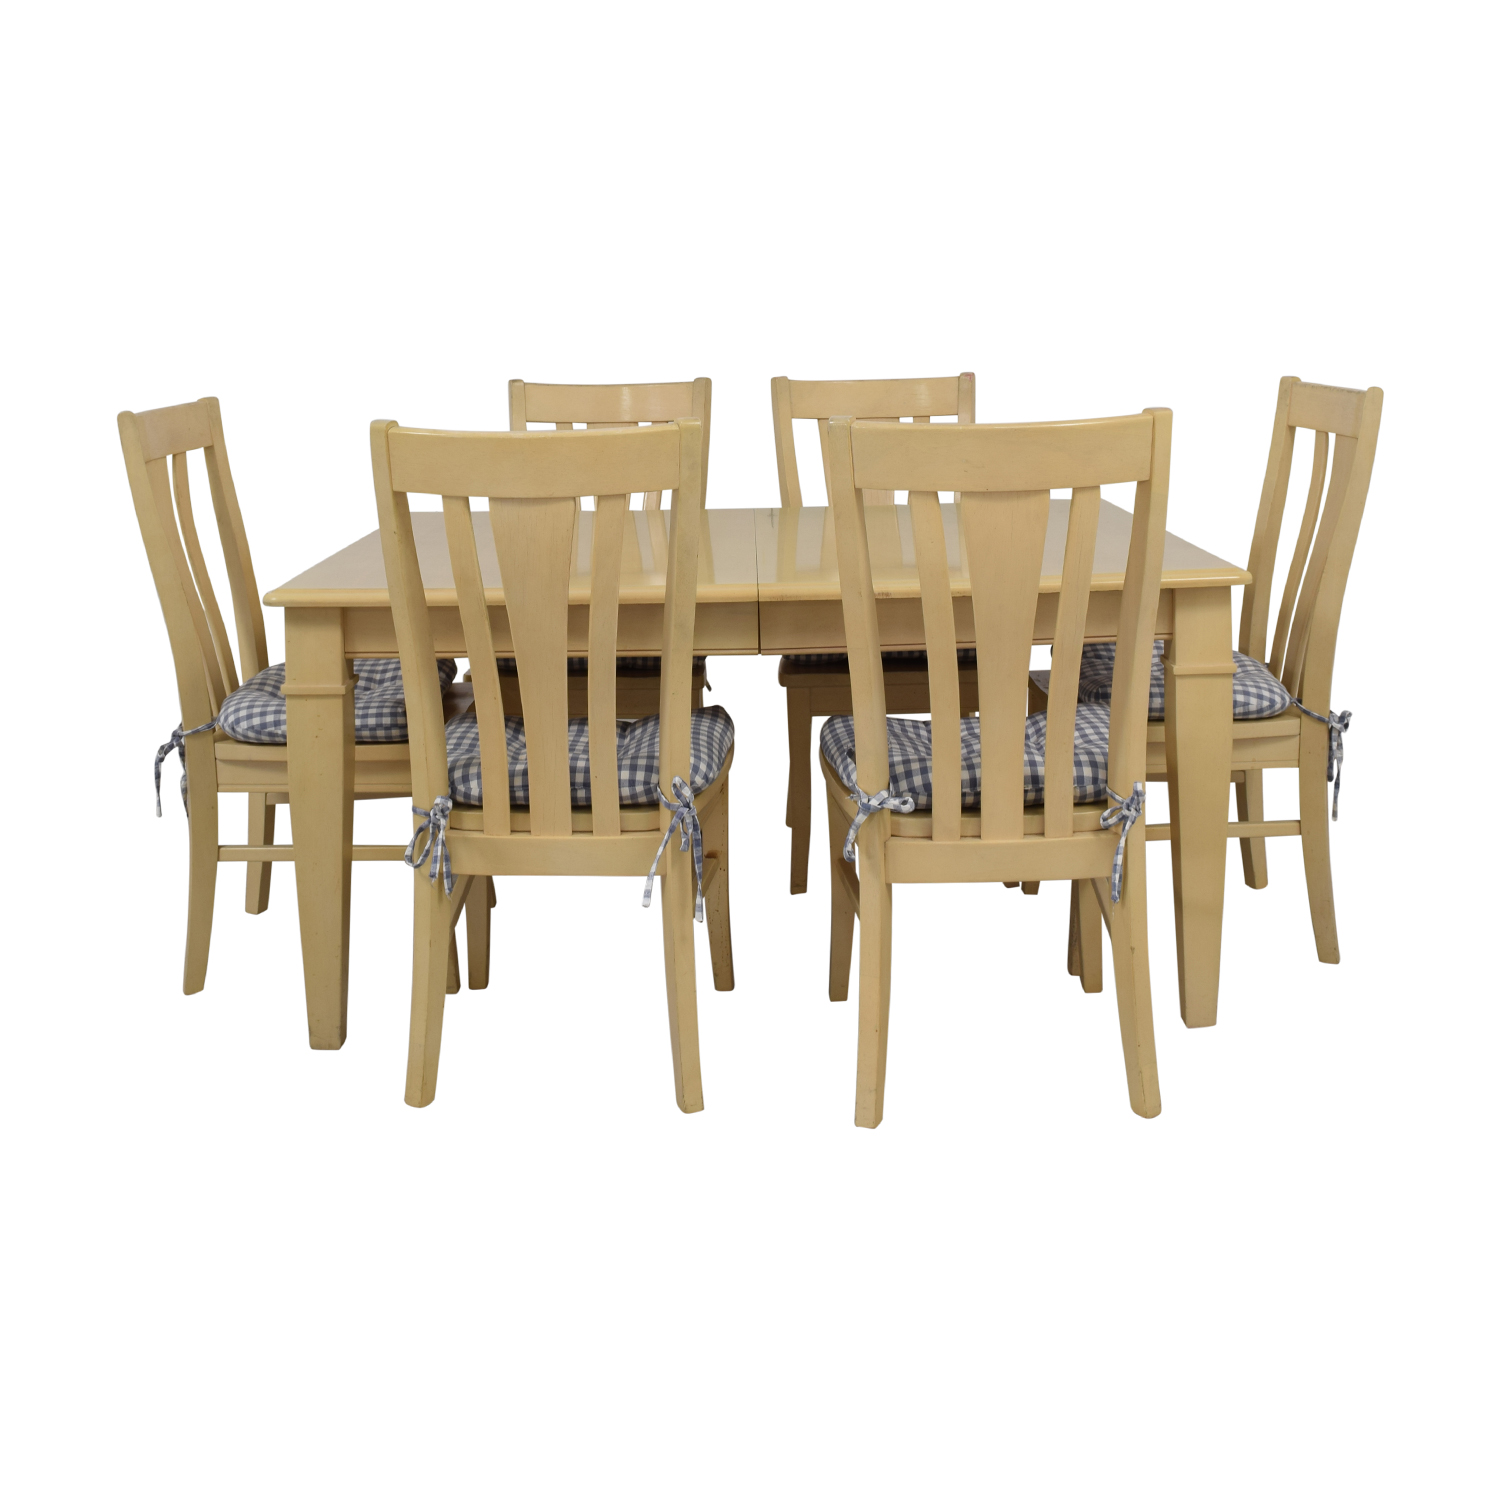 Bassett Furniture Blonde Wood Dining Set with Seat Cushions Bassett Furniture